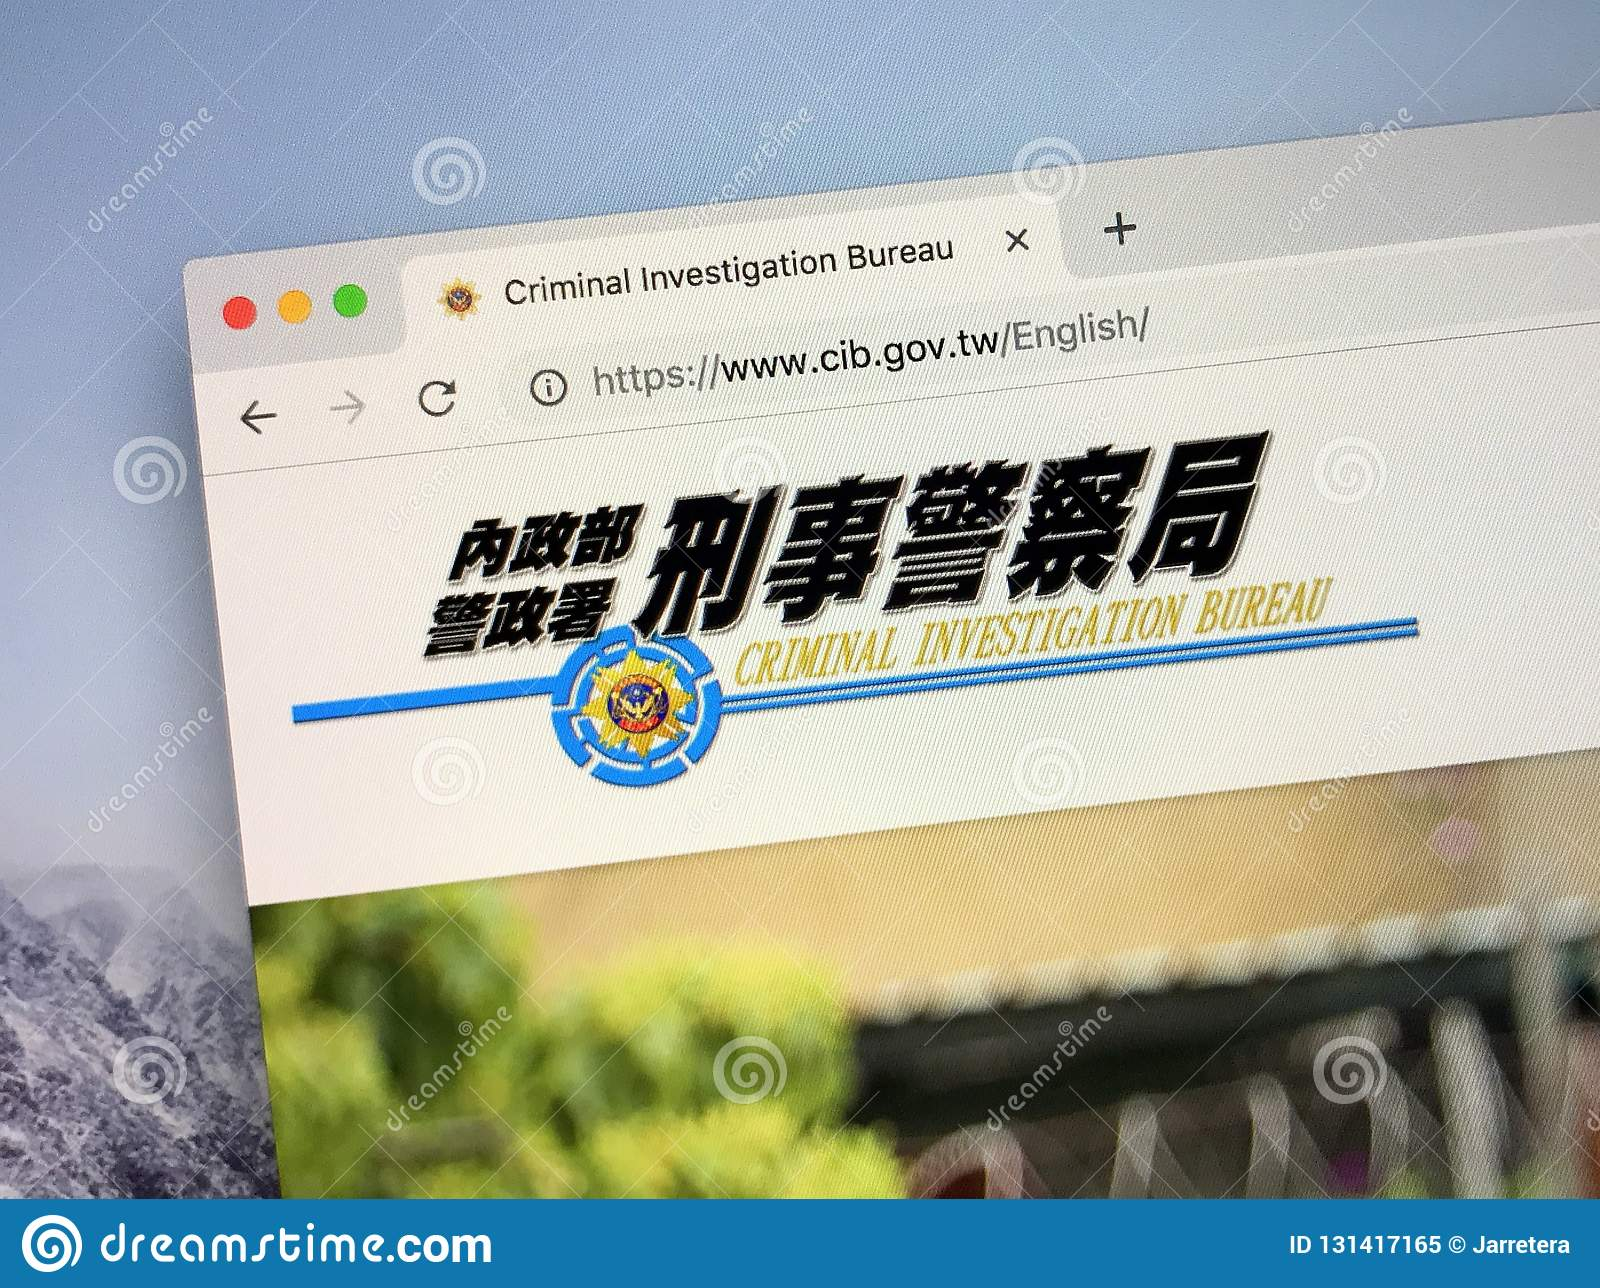 Website of the criminal investigation bureau or cib of taiwan